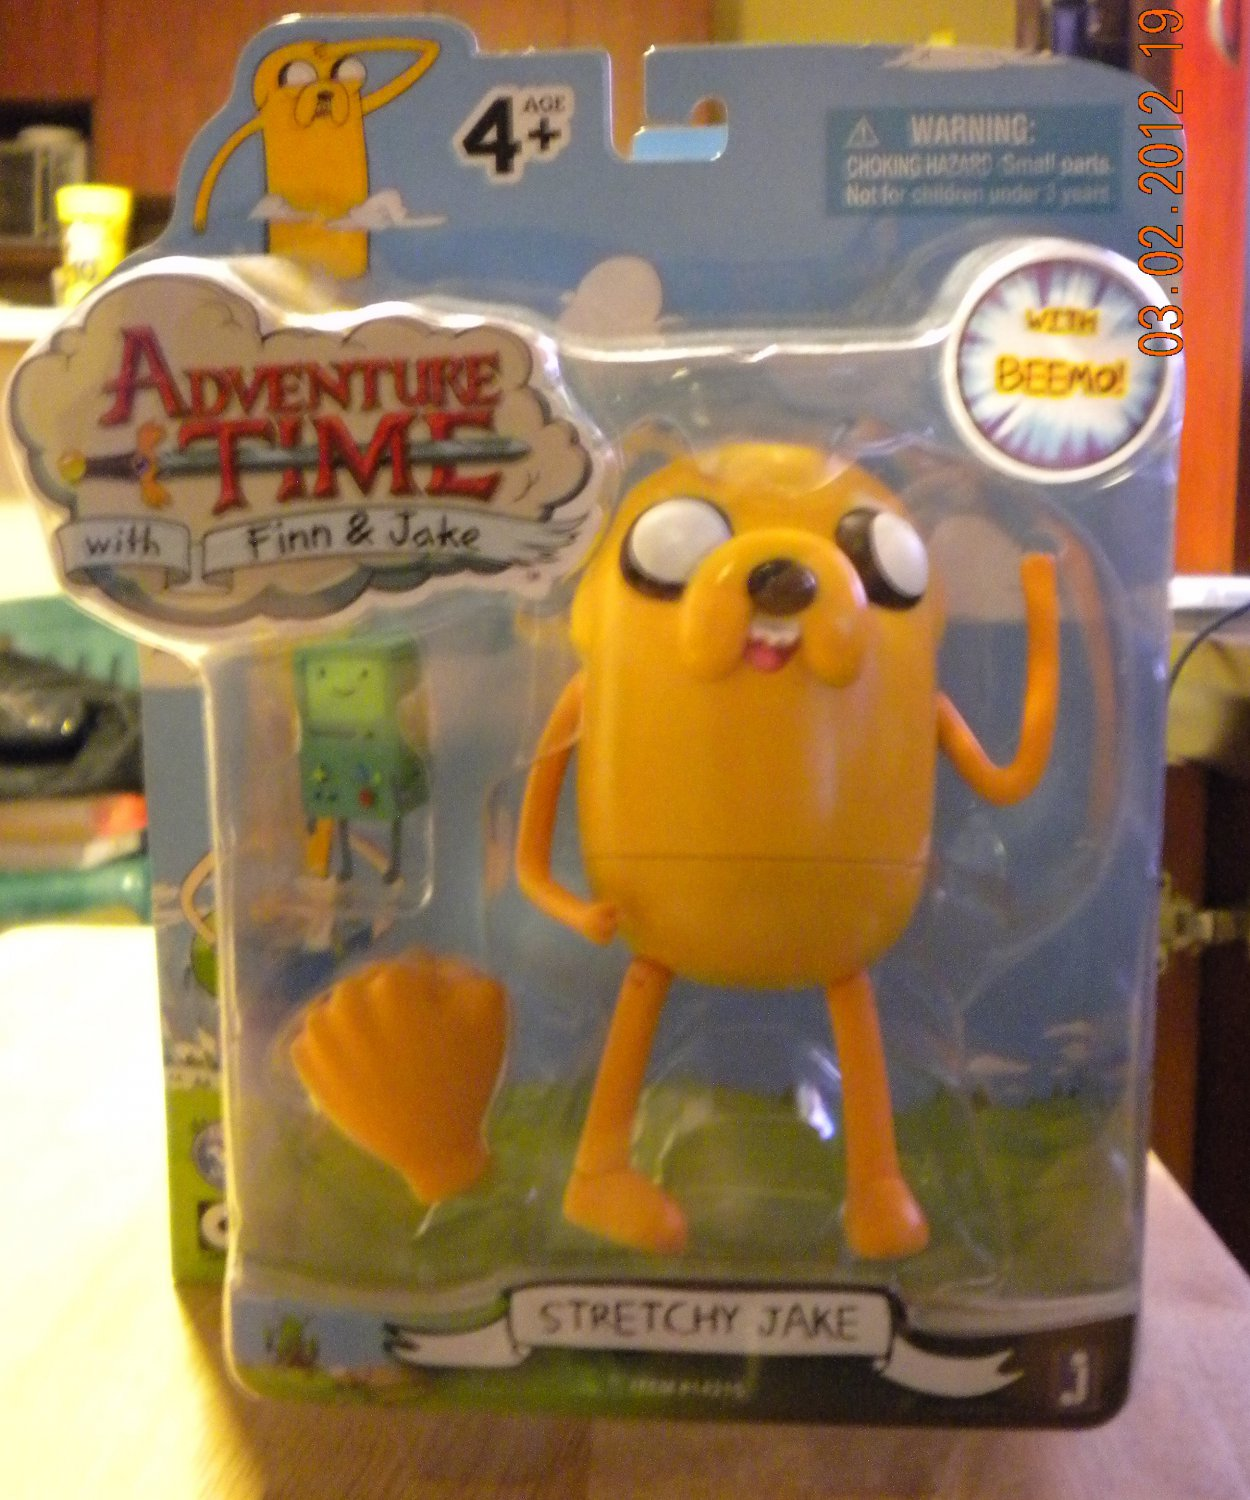 Adventure Time with Finn & Jake Stretchy Jake with Beemo New